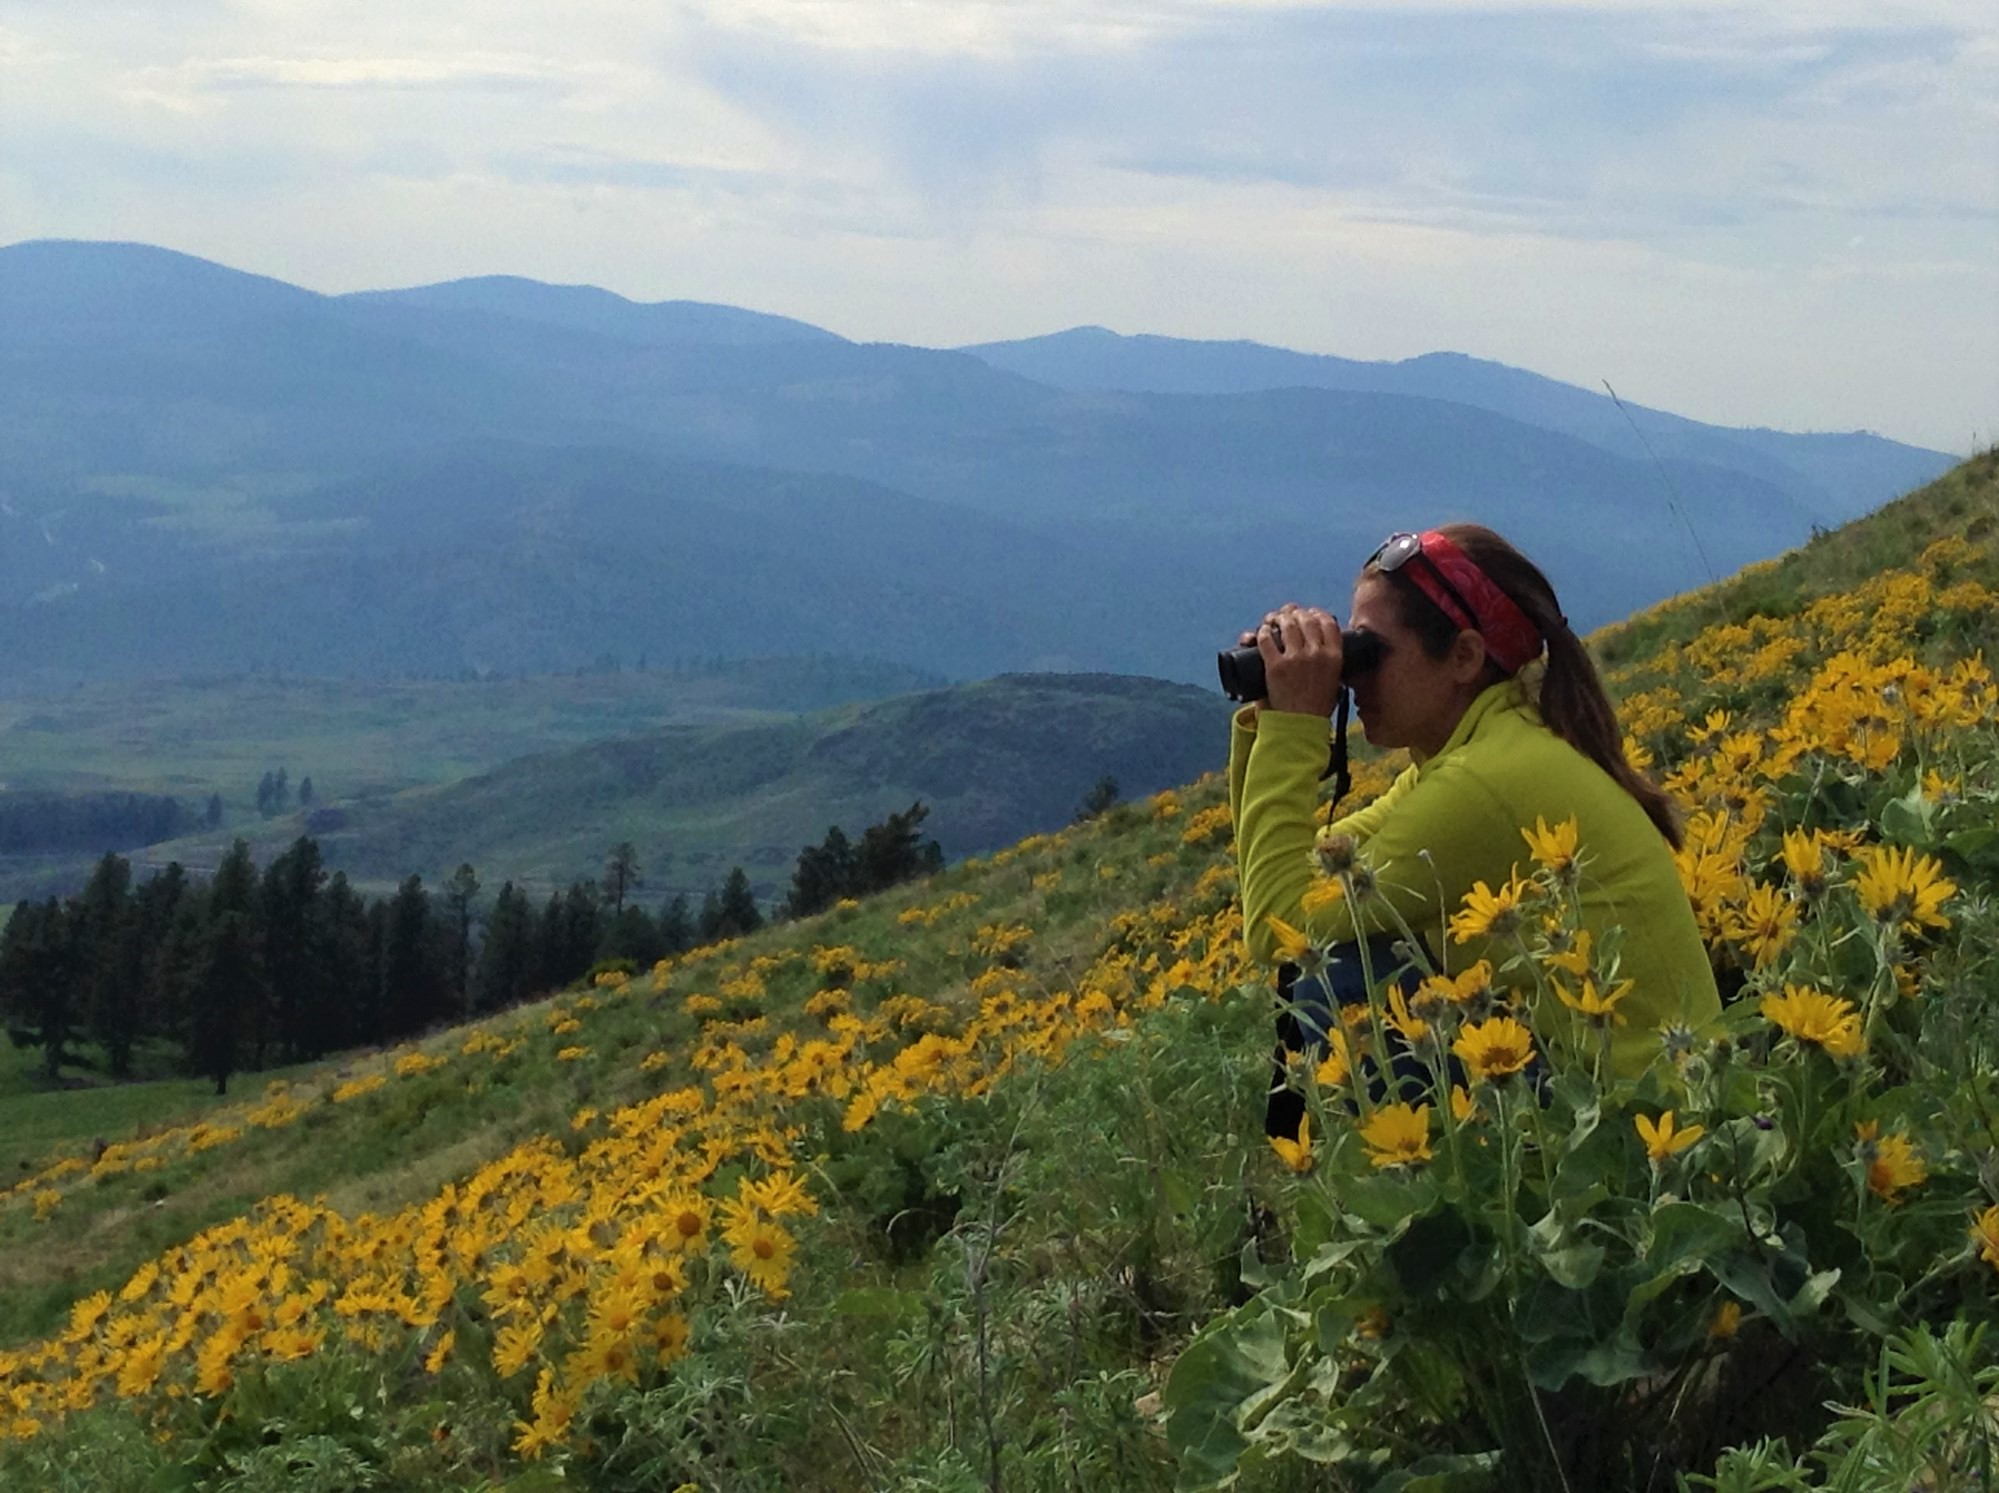 Person looks through binoculars while sitting on hill slope with wildflowers.